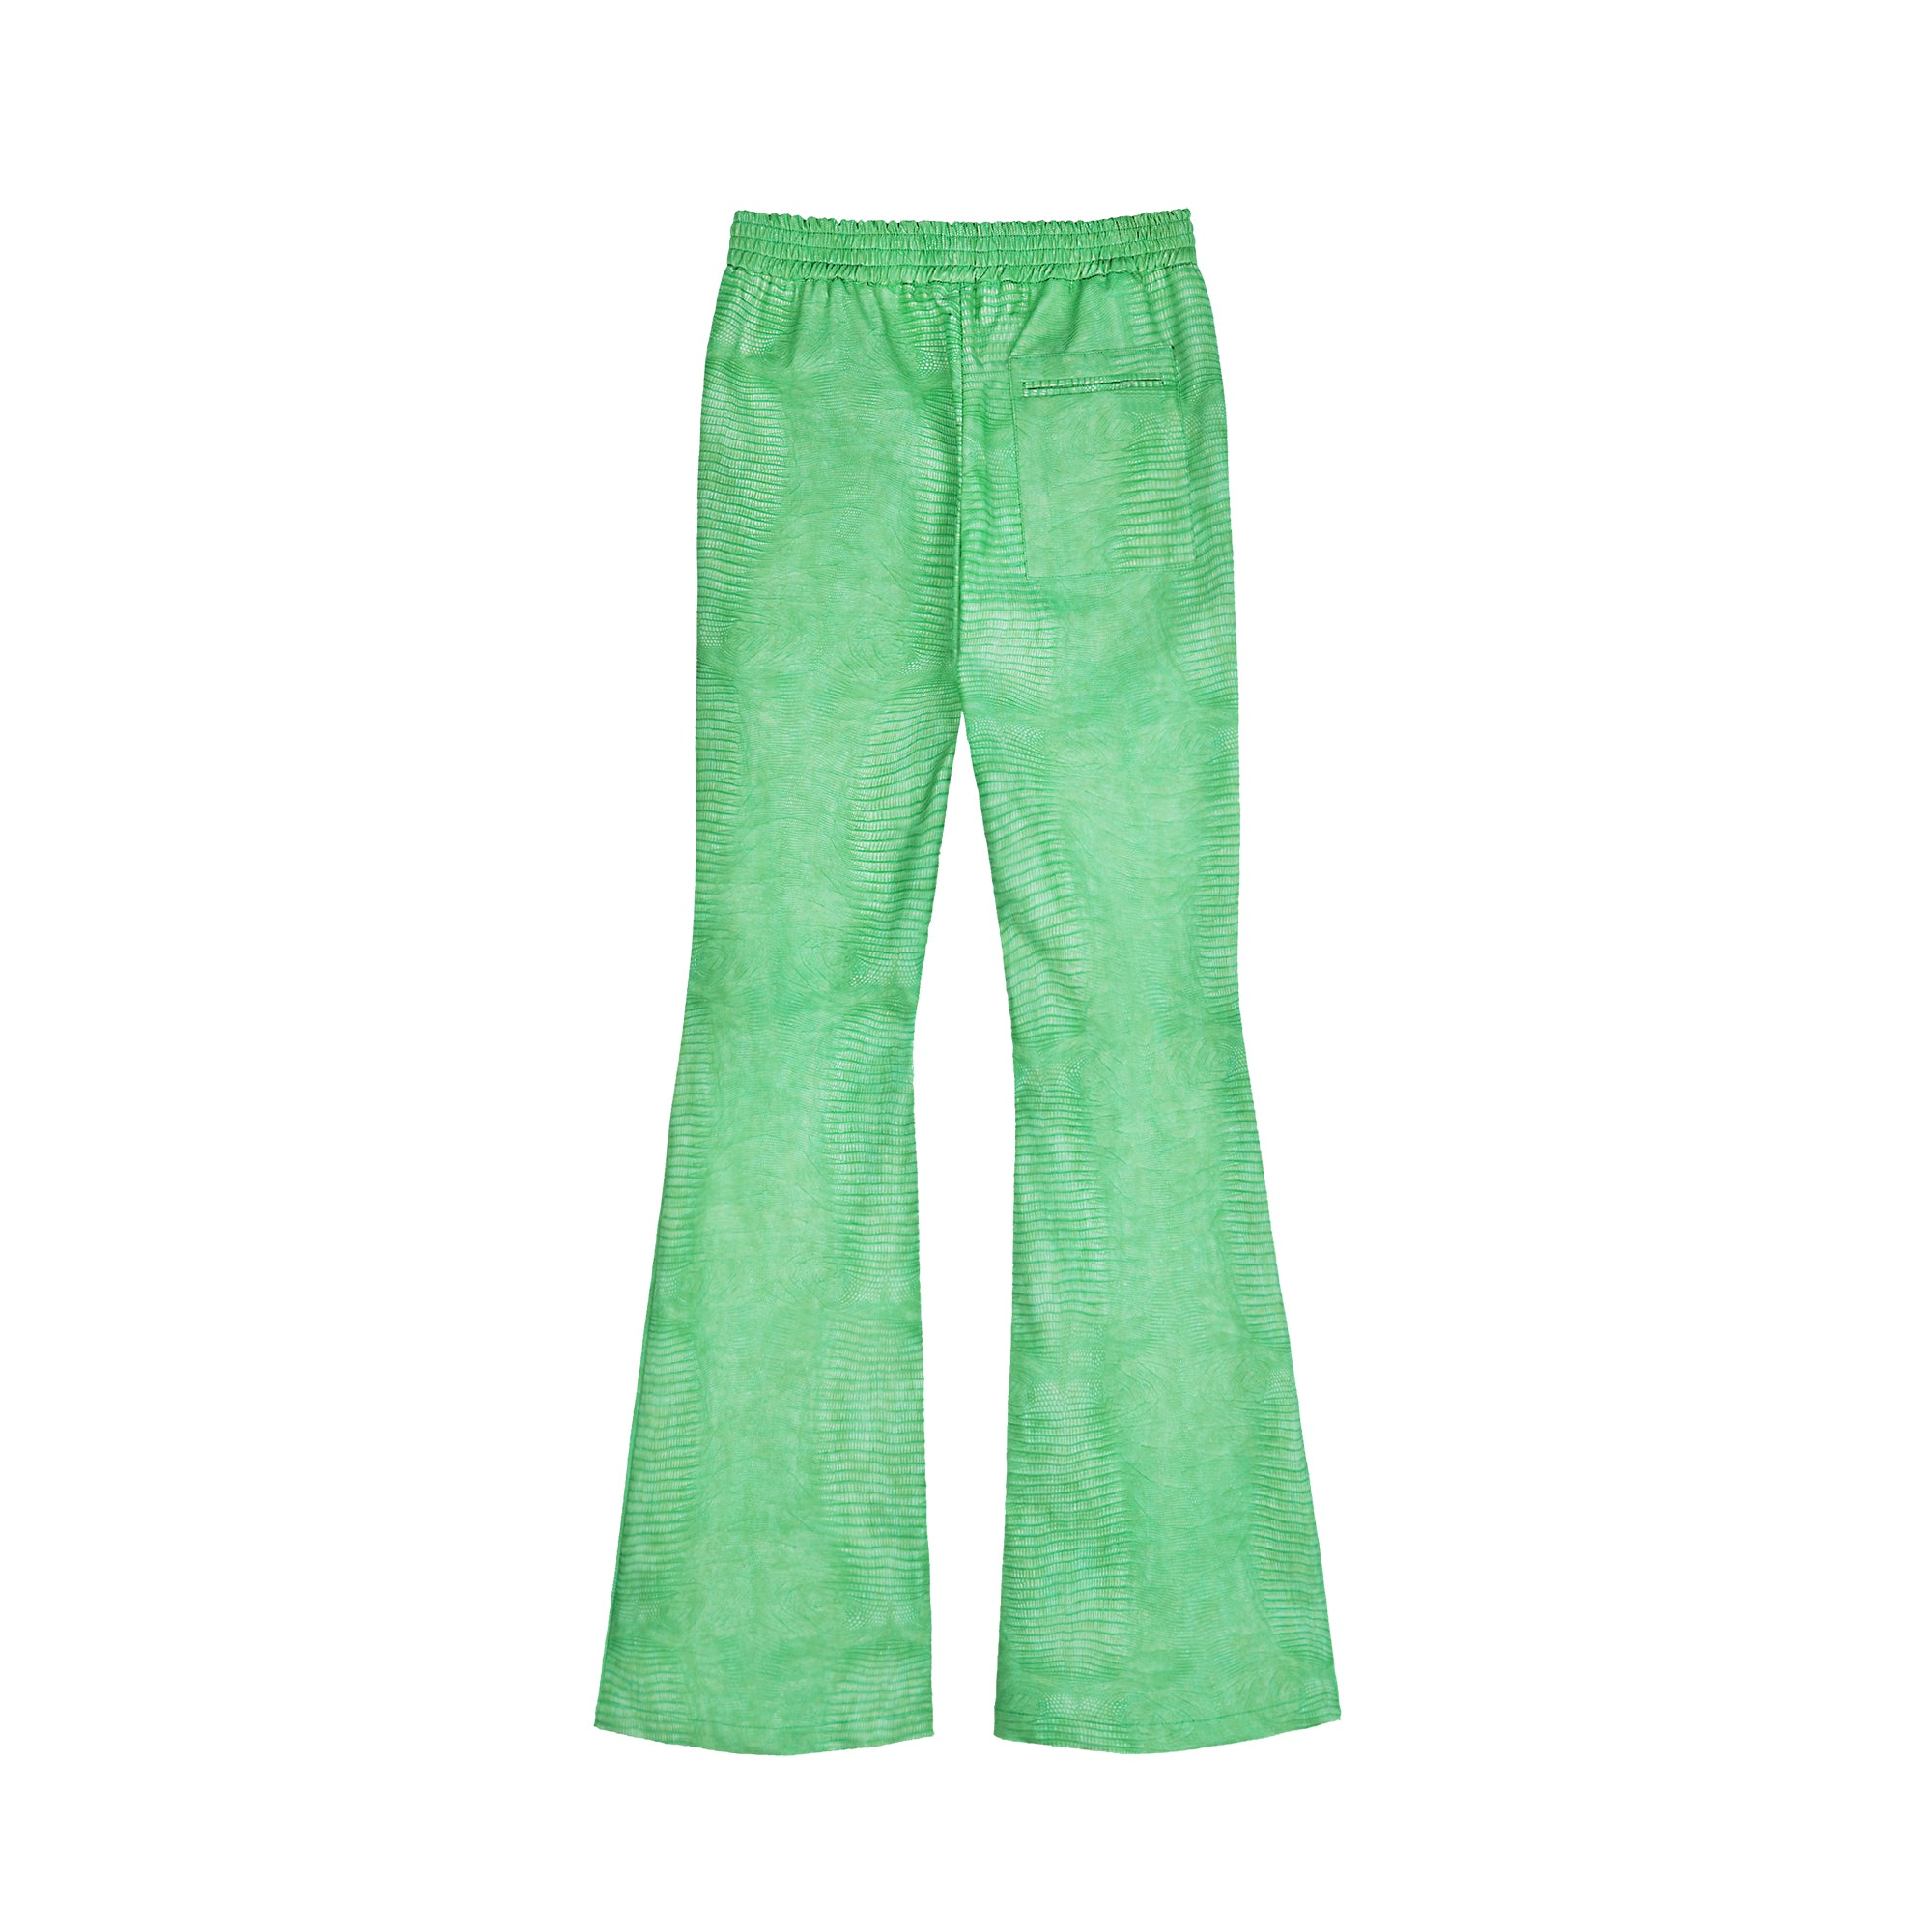 NUTEMPEROR Z Project 0002 green lizard skin slim flared pants